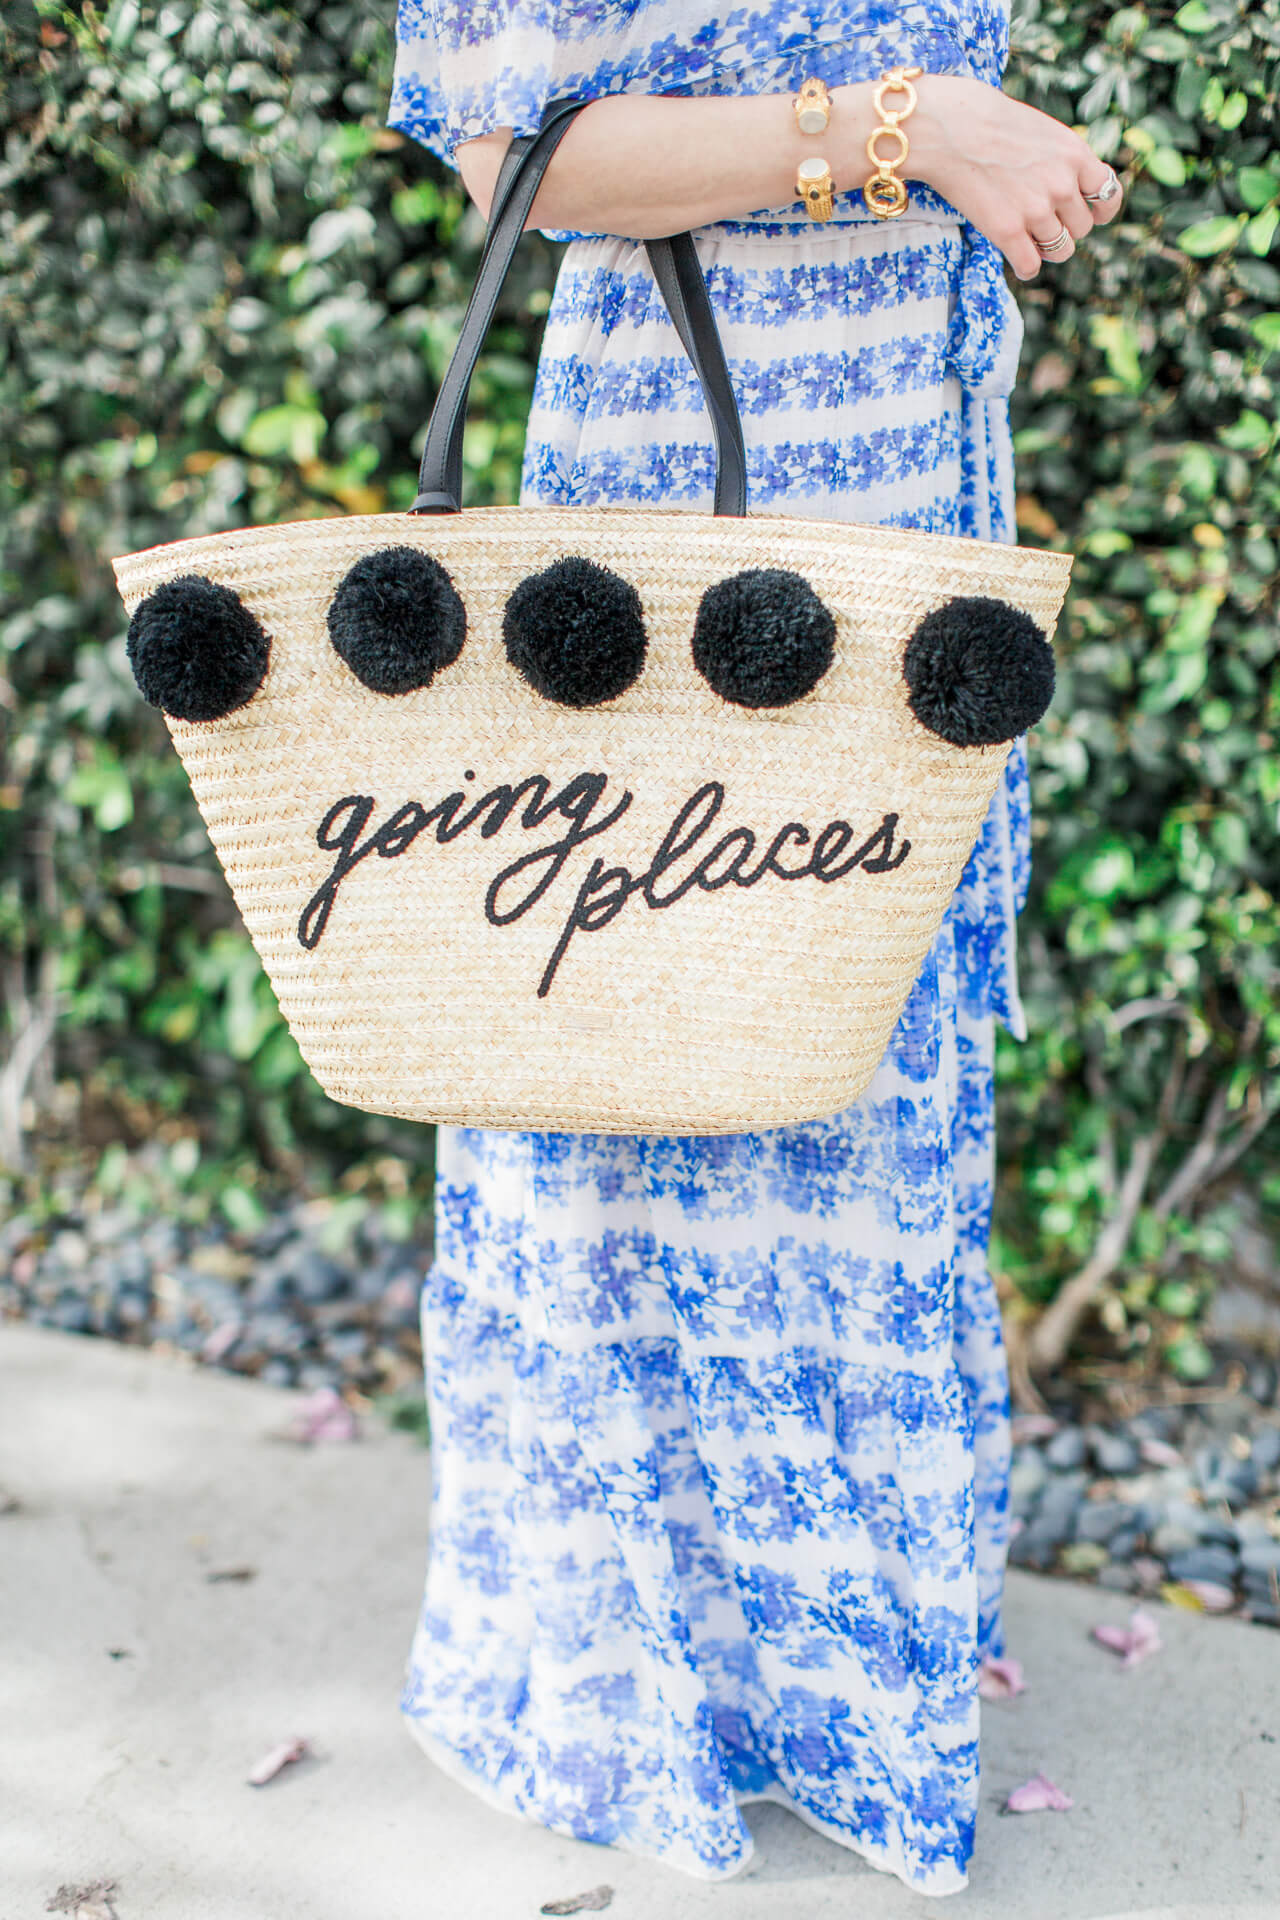 how fun is this kate spade going places tote?! Great tote for spring and summer